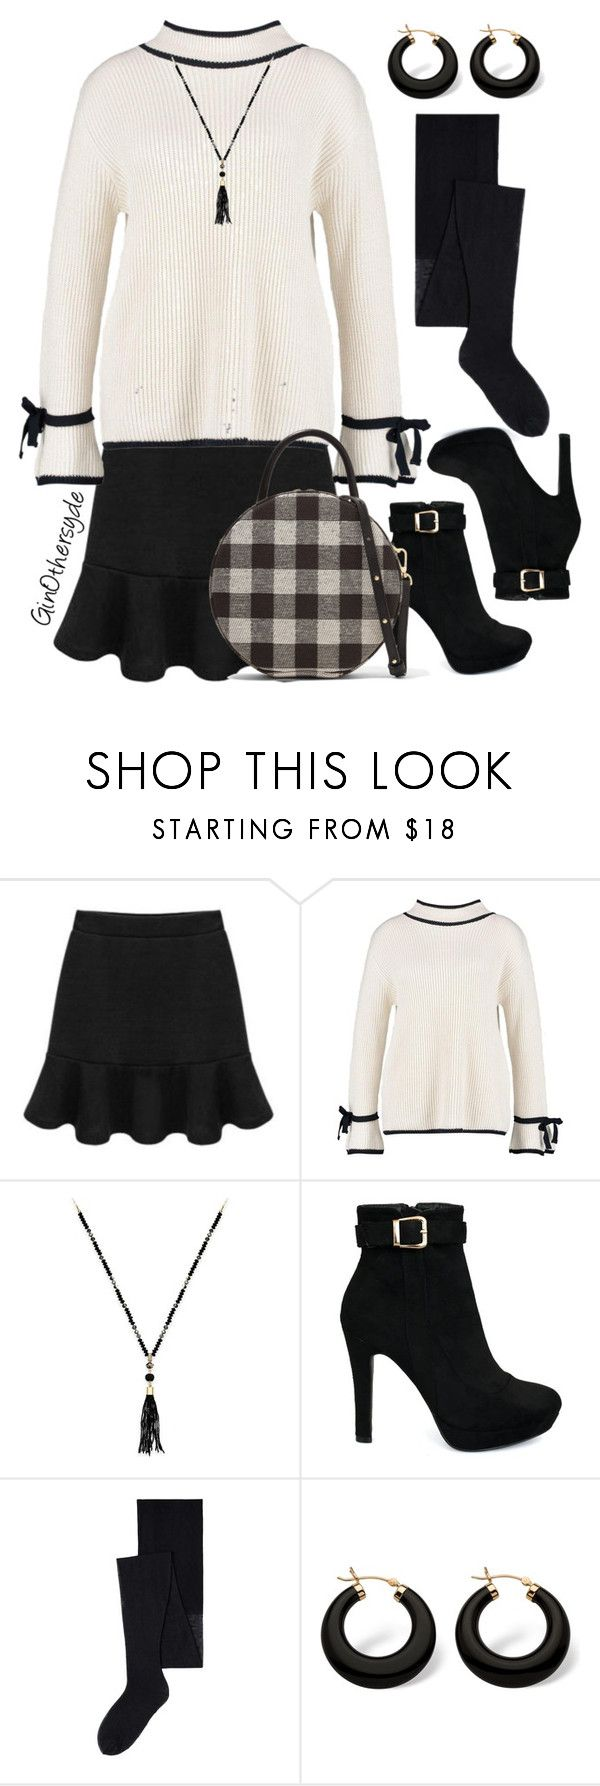 """""""Curvy Woman - Plus Size"""" by ginothersyde ❤ liked on Polyvore featuring Boohoo, INC International Concepts, MANGO, Palm Beach Jewelry, Mansur Gavriel and 471"""